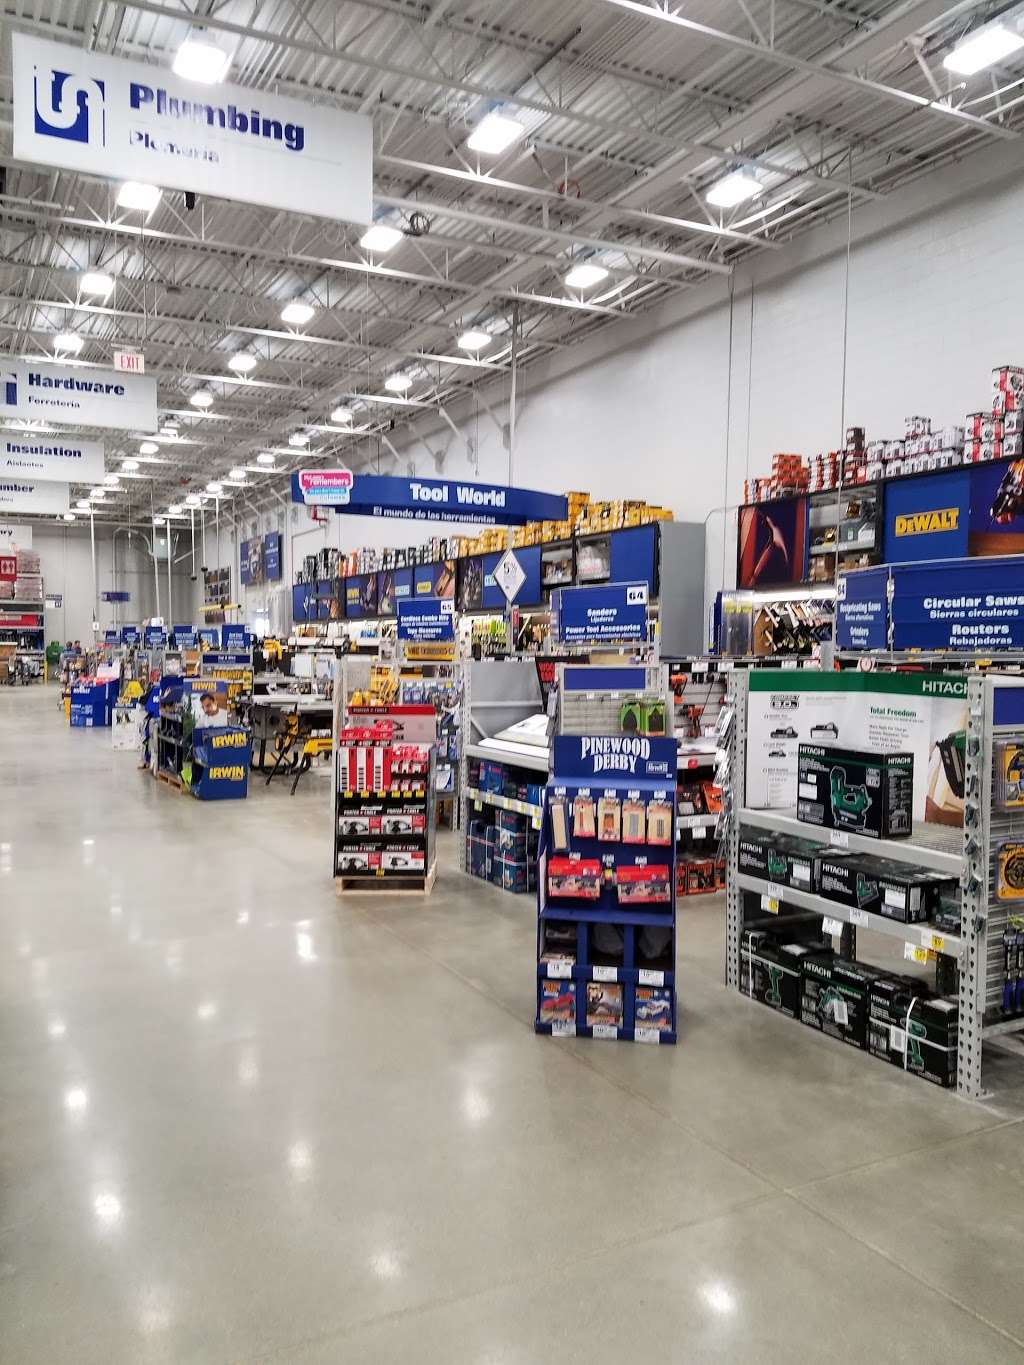 Lowes Home Improvement - hardware store  | Photo 4 of 9 | Address: 1751 E Monte Vista Ave, Vacaville, CA 95688, USA | Phone: (707) 455-4400